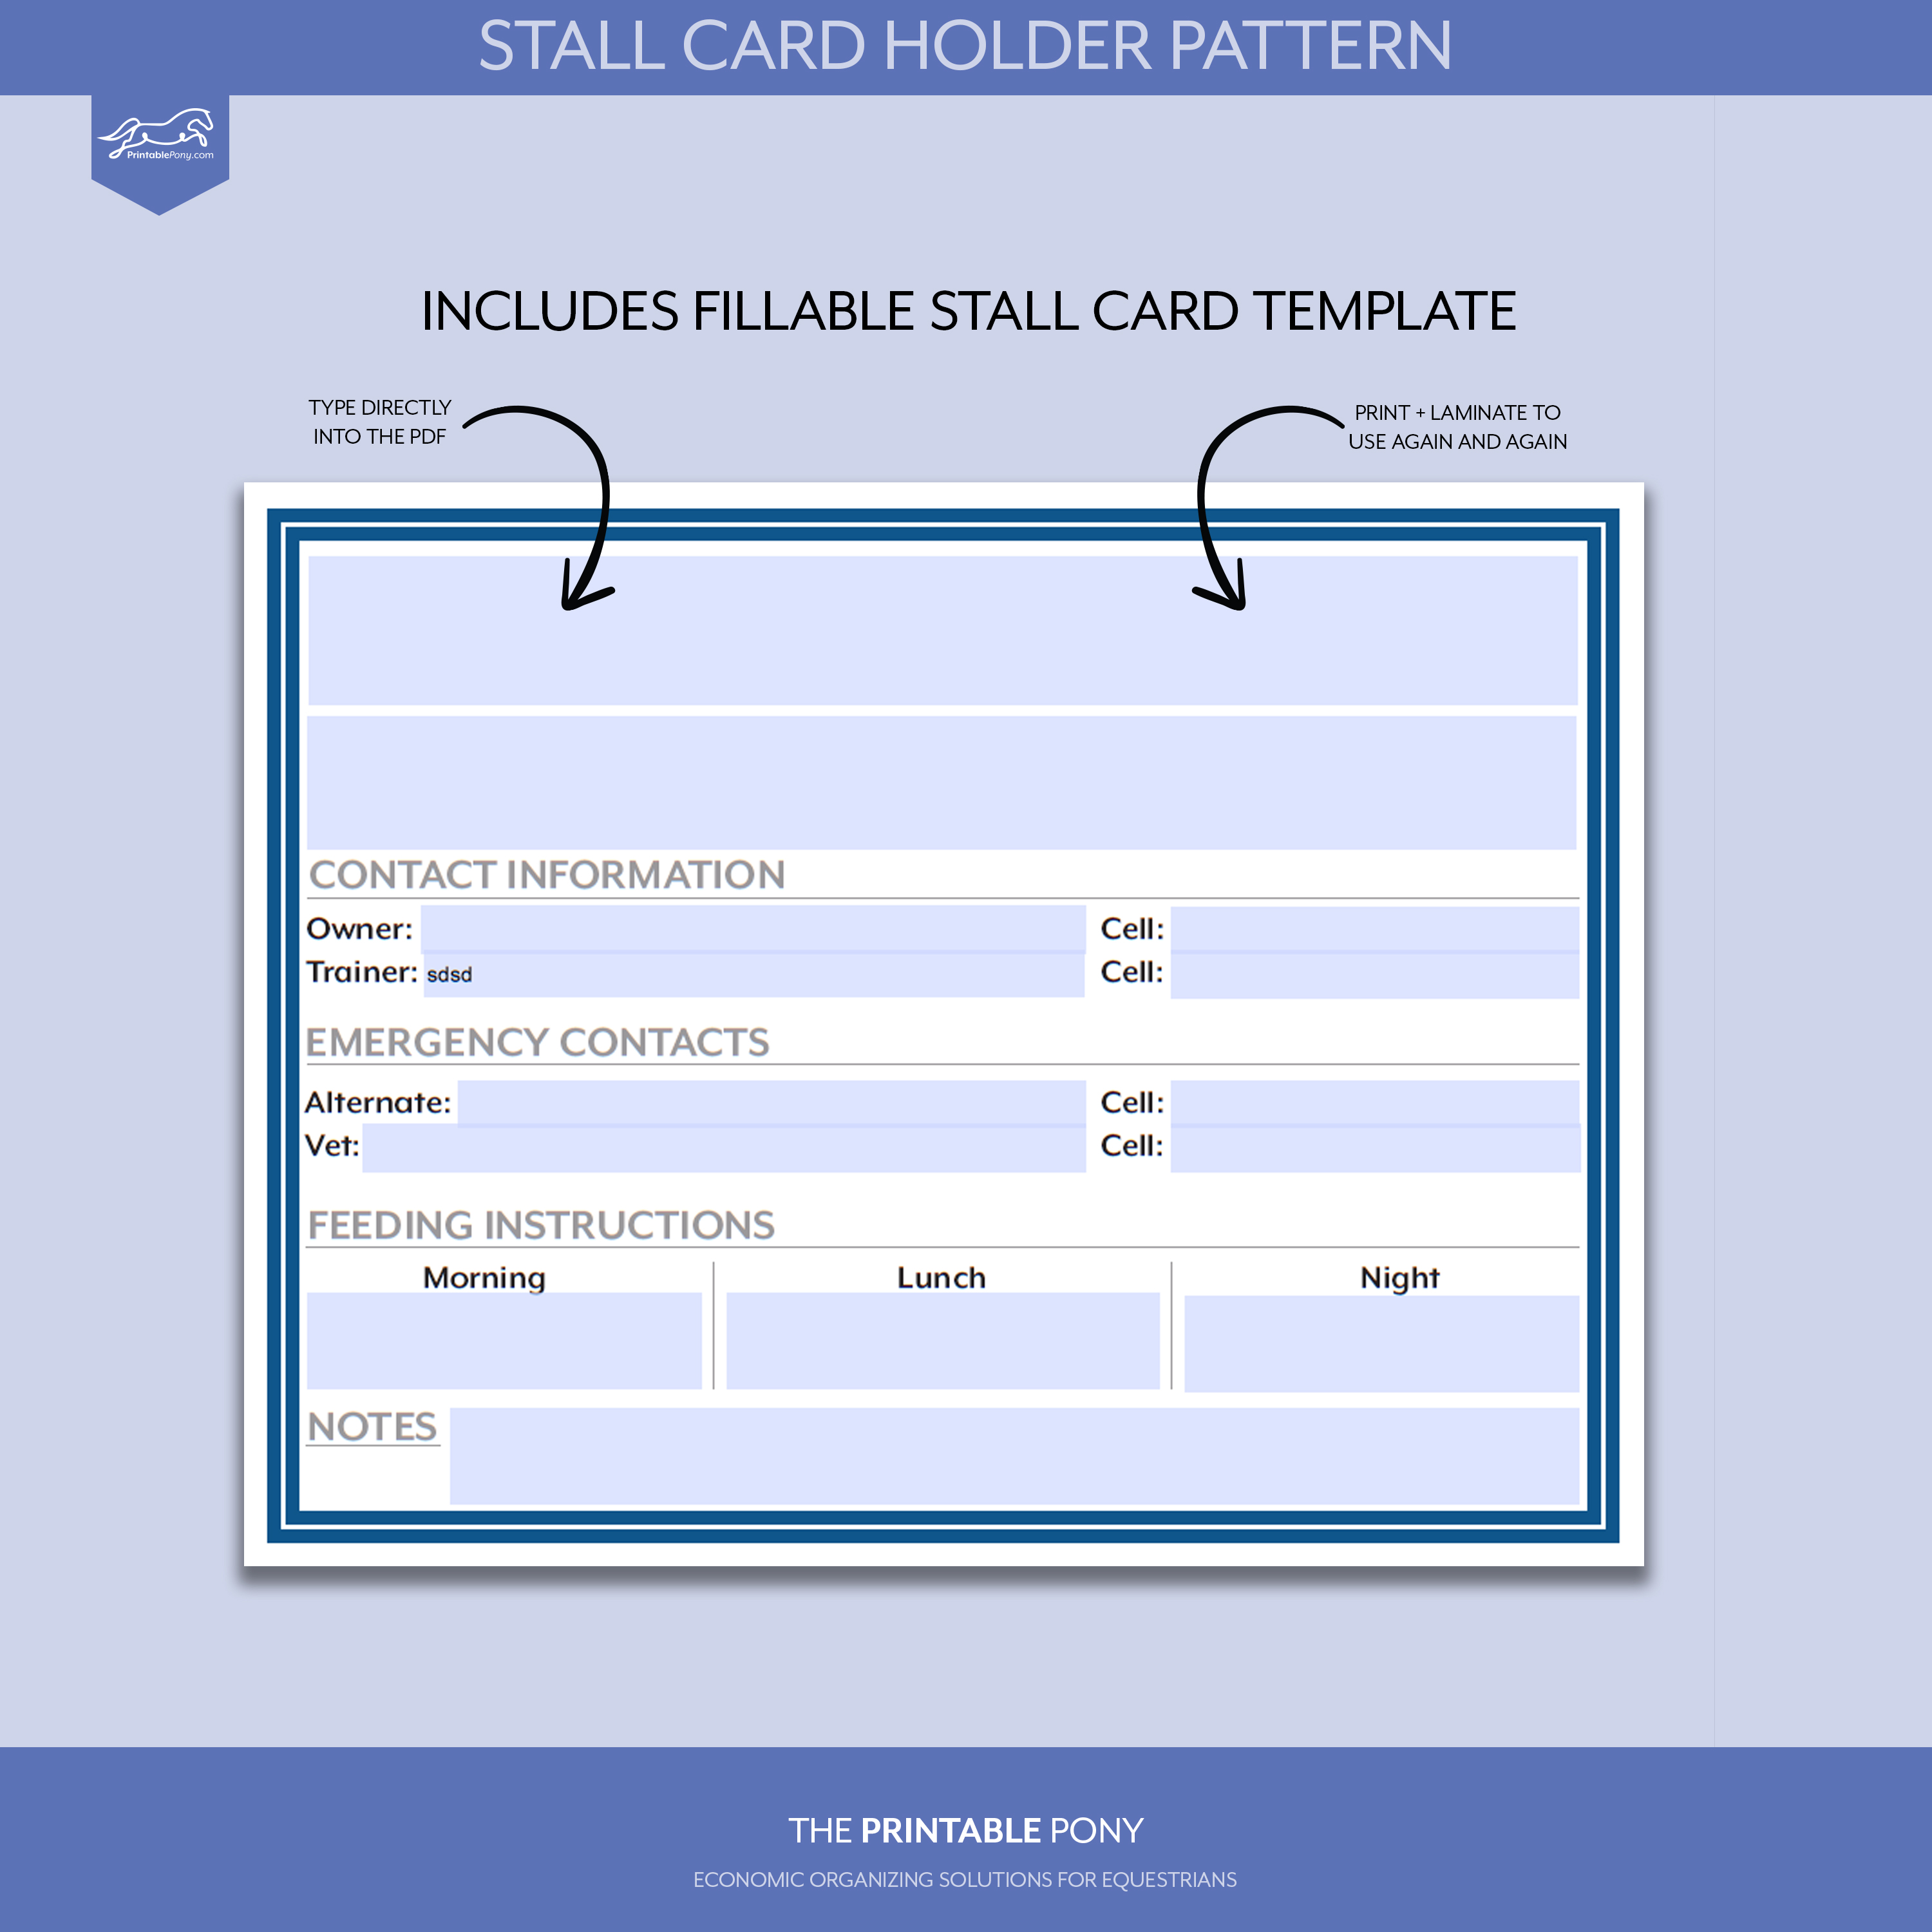 stall card holder pattern printable stall card the